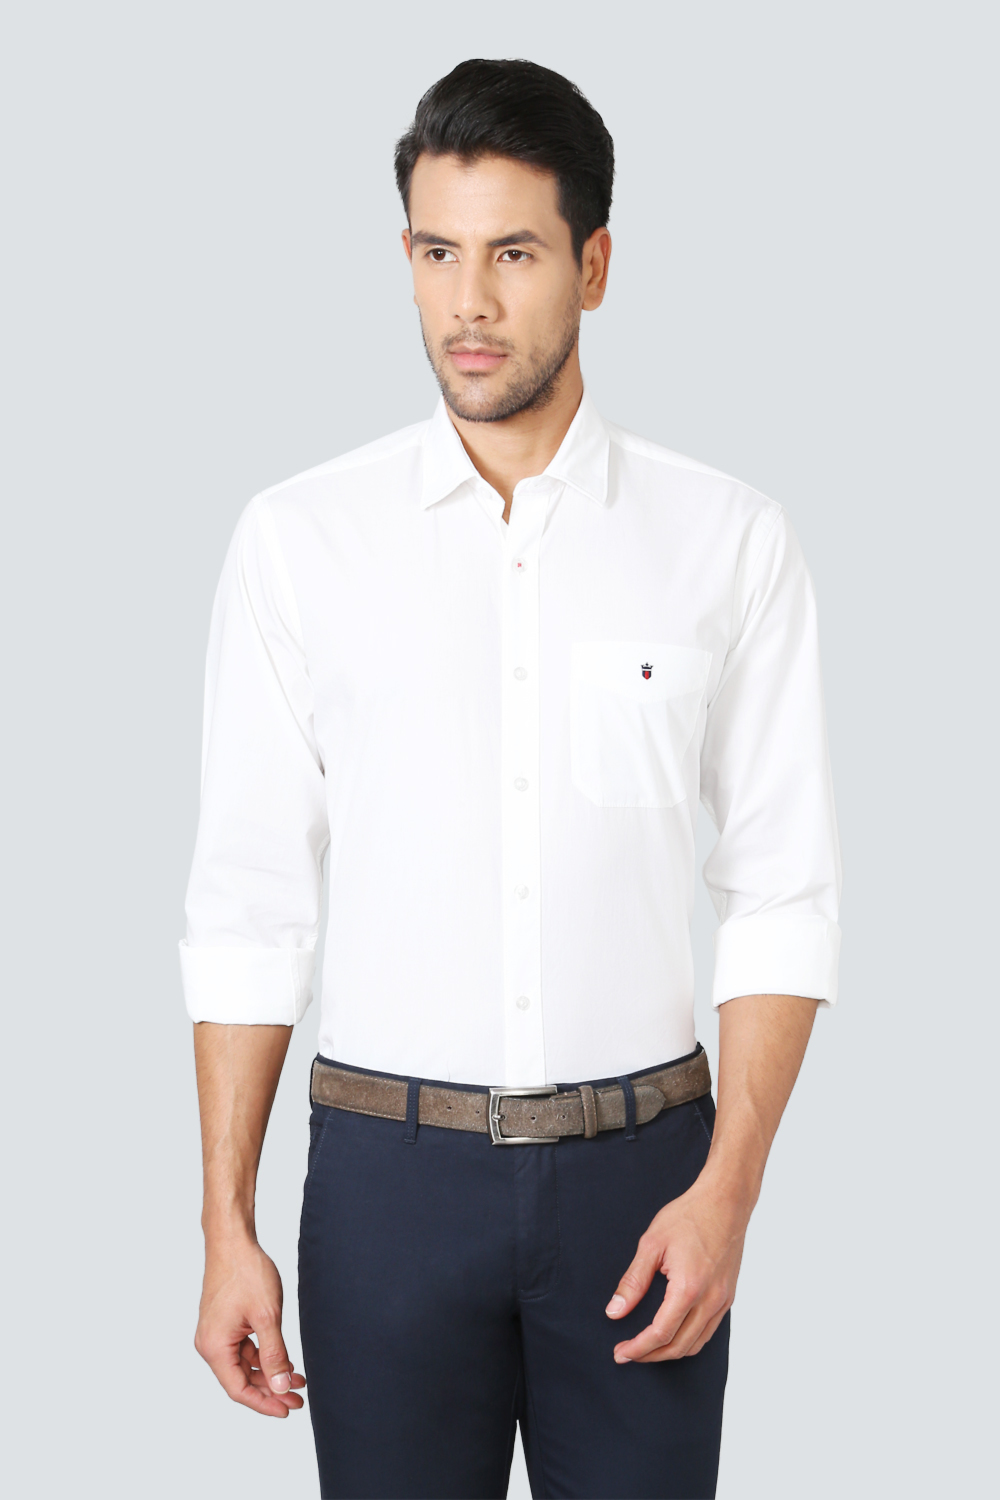 e6aa817c34 LP Shirts, Louis Philippe White Shirt for Men at Louisphilippe.com